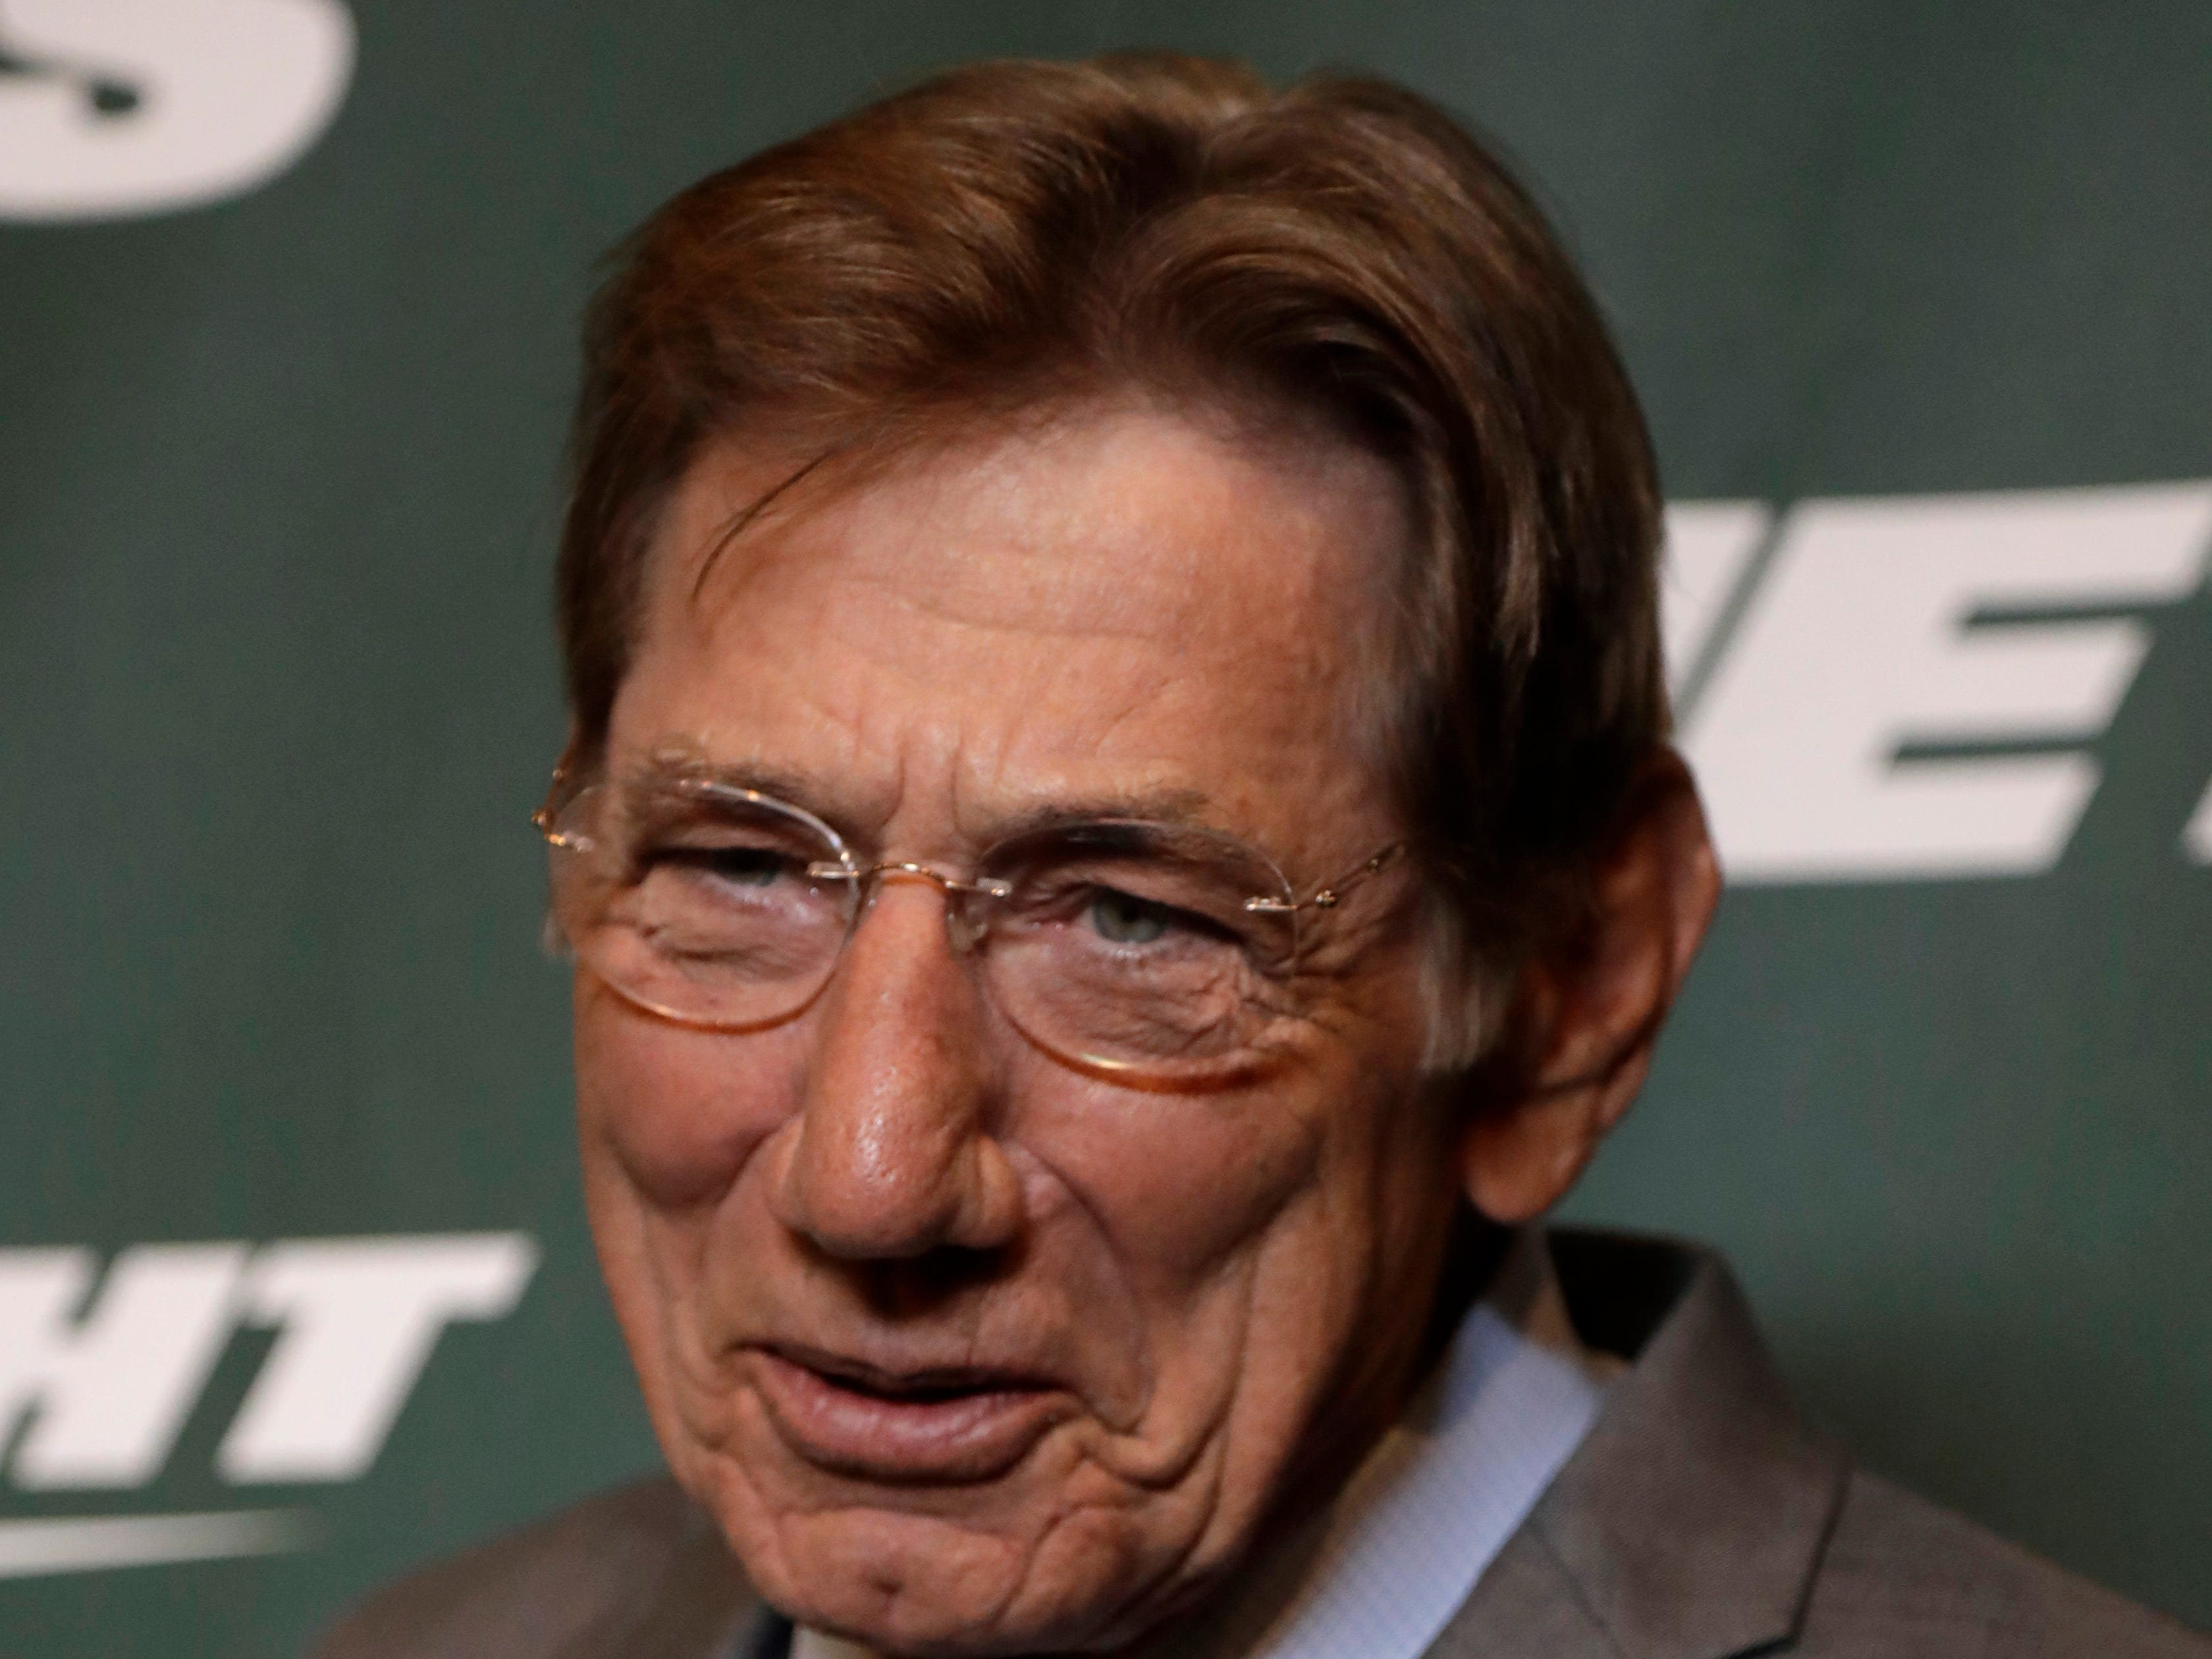 Former New York Jets quarterback Joe Namath poses for photographers on the green carpet ahead of an event unveiling the NFL football team's new uniforms Thursday, April 4, 2019, in New York. (AP Photo/Julio Cortez)